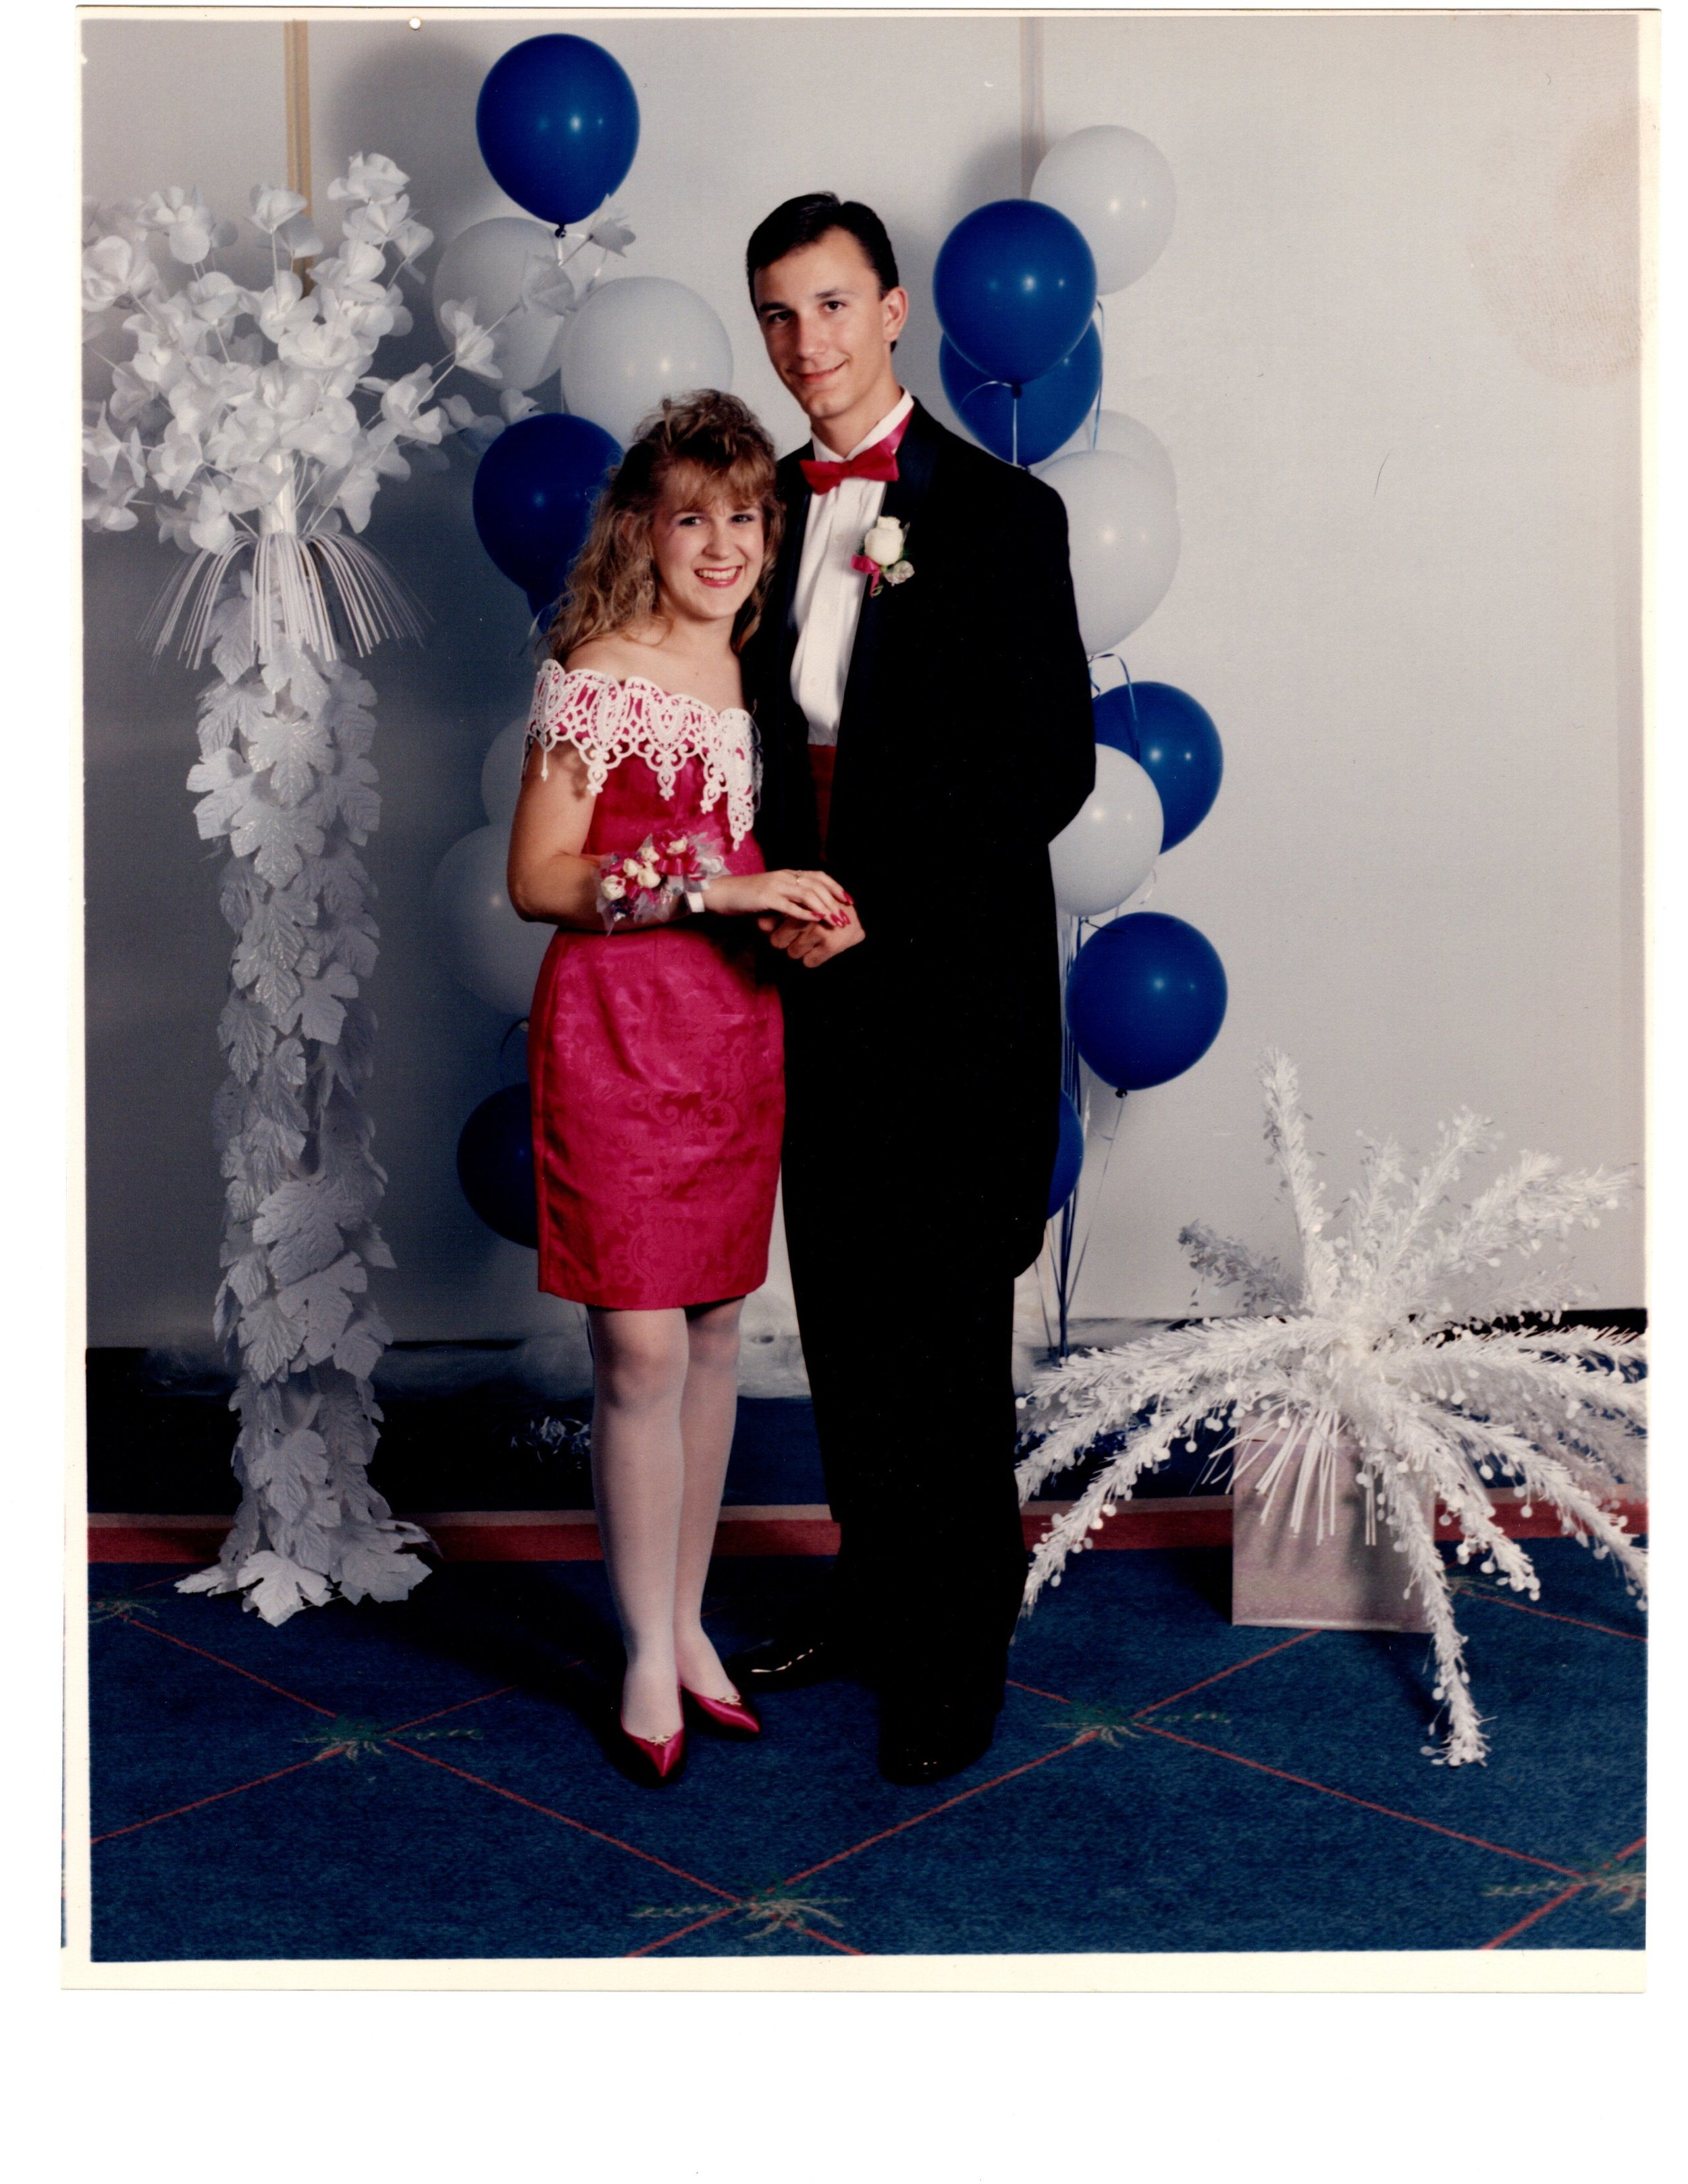 THIS IS US!! ALLEN'S JR/SR PROM 1993 (Do not knock the white pantyhose and big hair! They were totally a thing! Ha-ha. And look at my man! He looks good! Couldn't find a photo of us on our ski trip but this a close second! We were sooo young but even then, generosity played a huge part in our relationship.